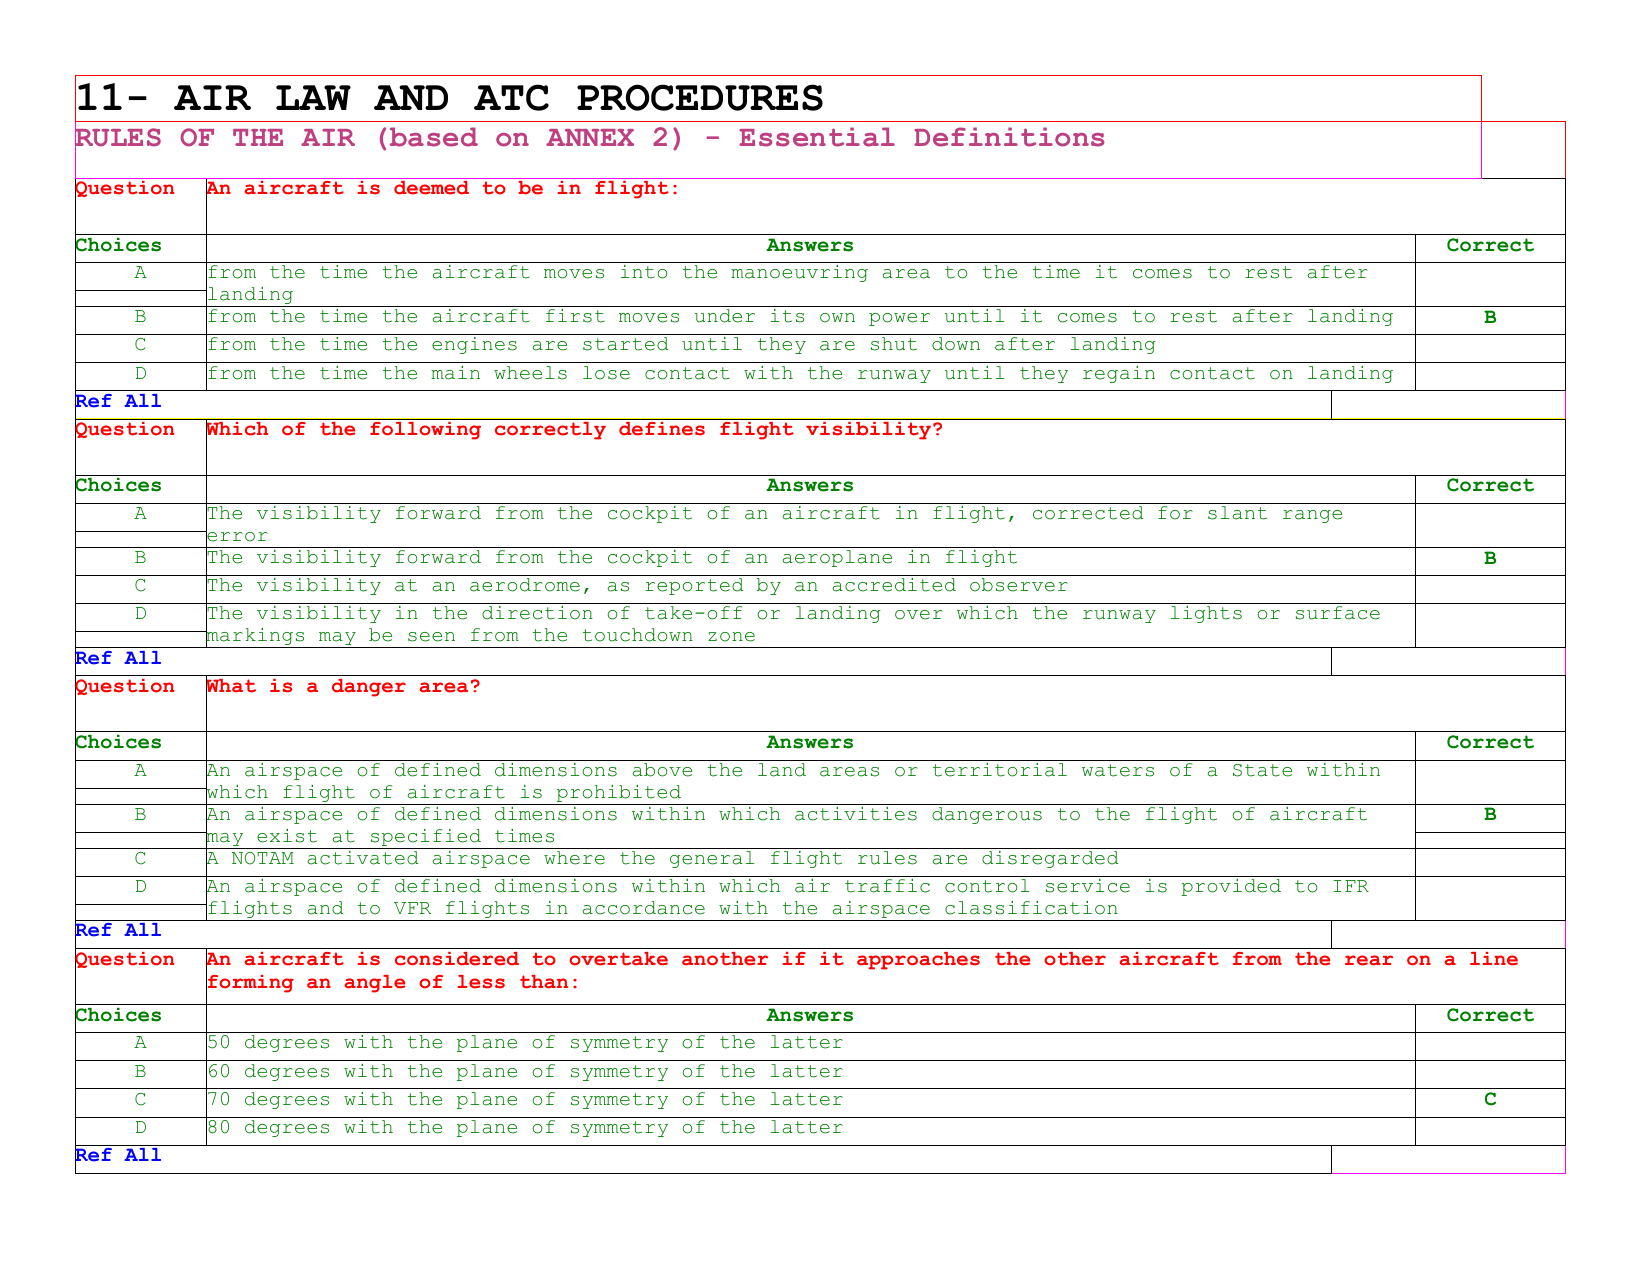 11 AIR LAW AND ATC PROCEDURES.pdf